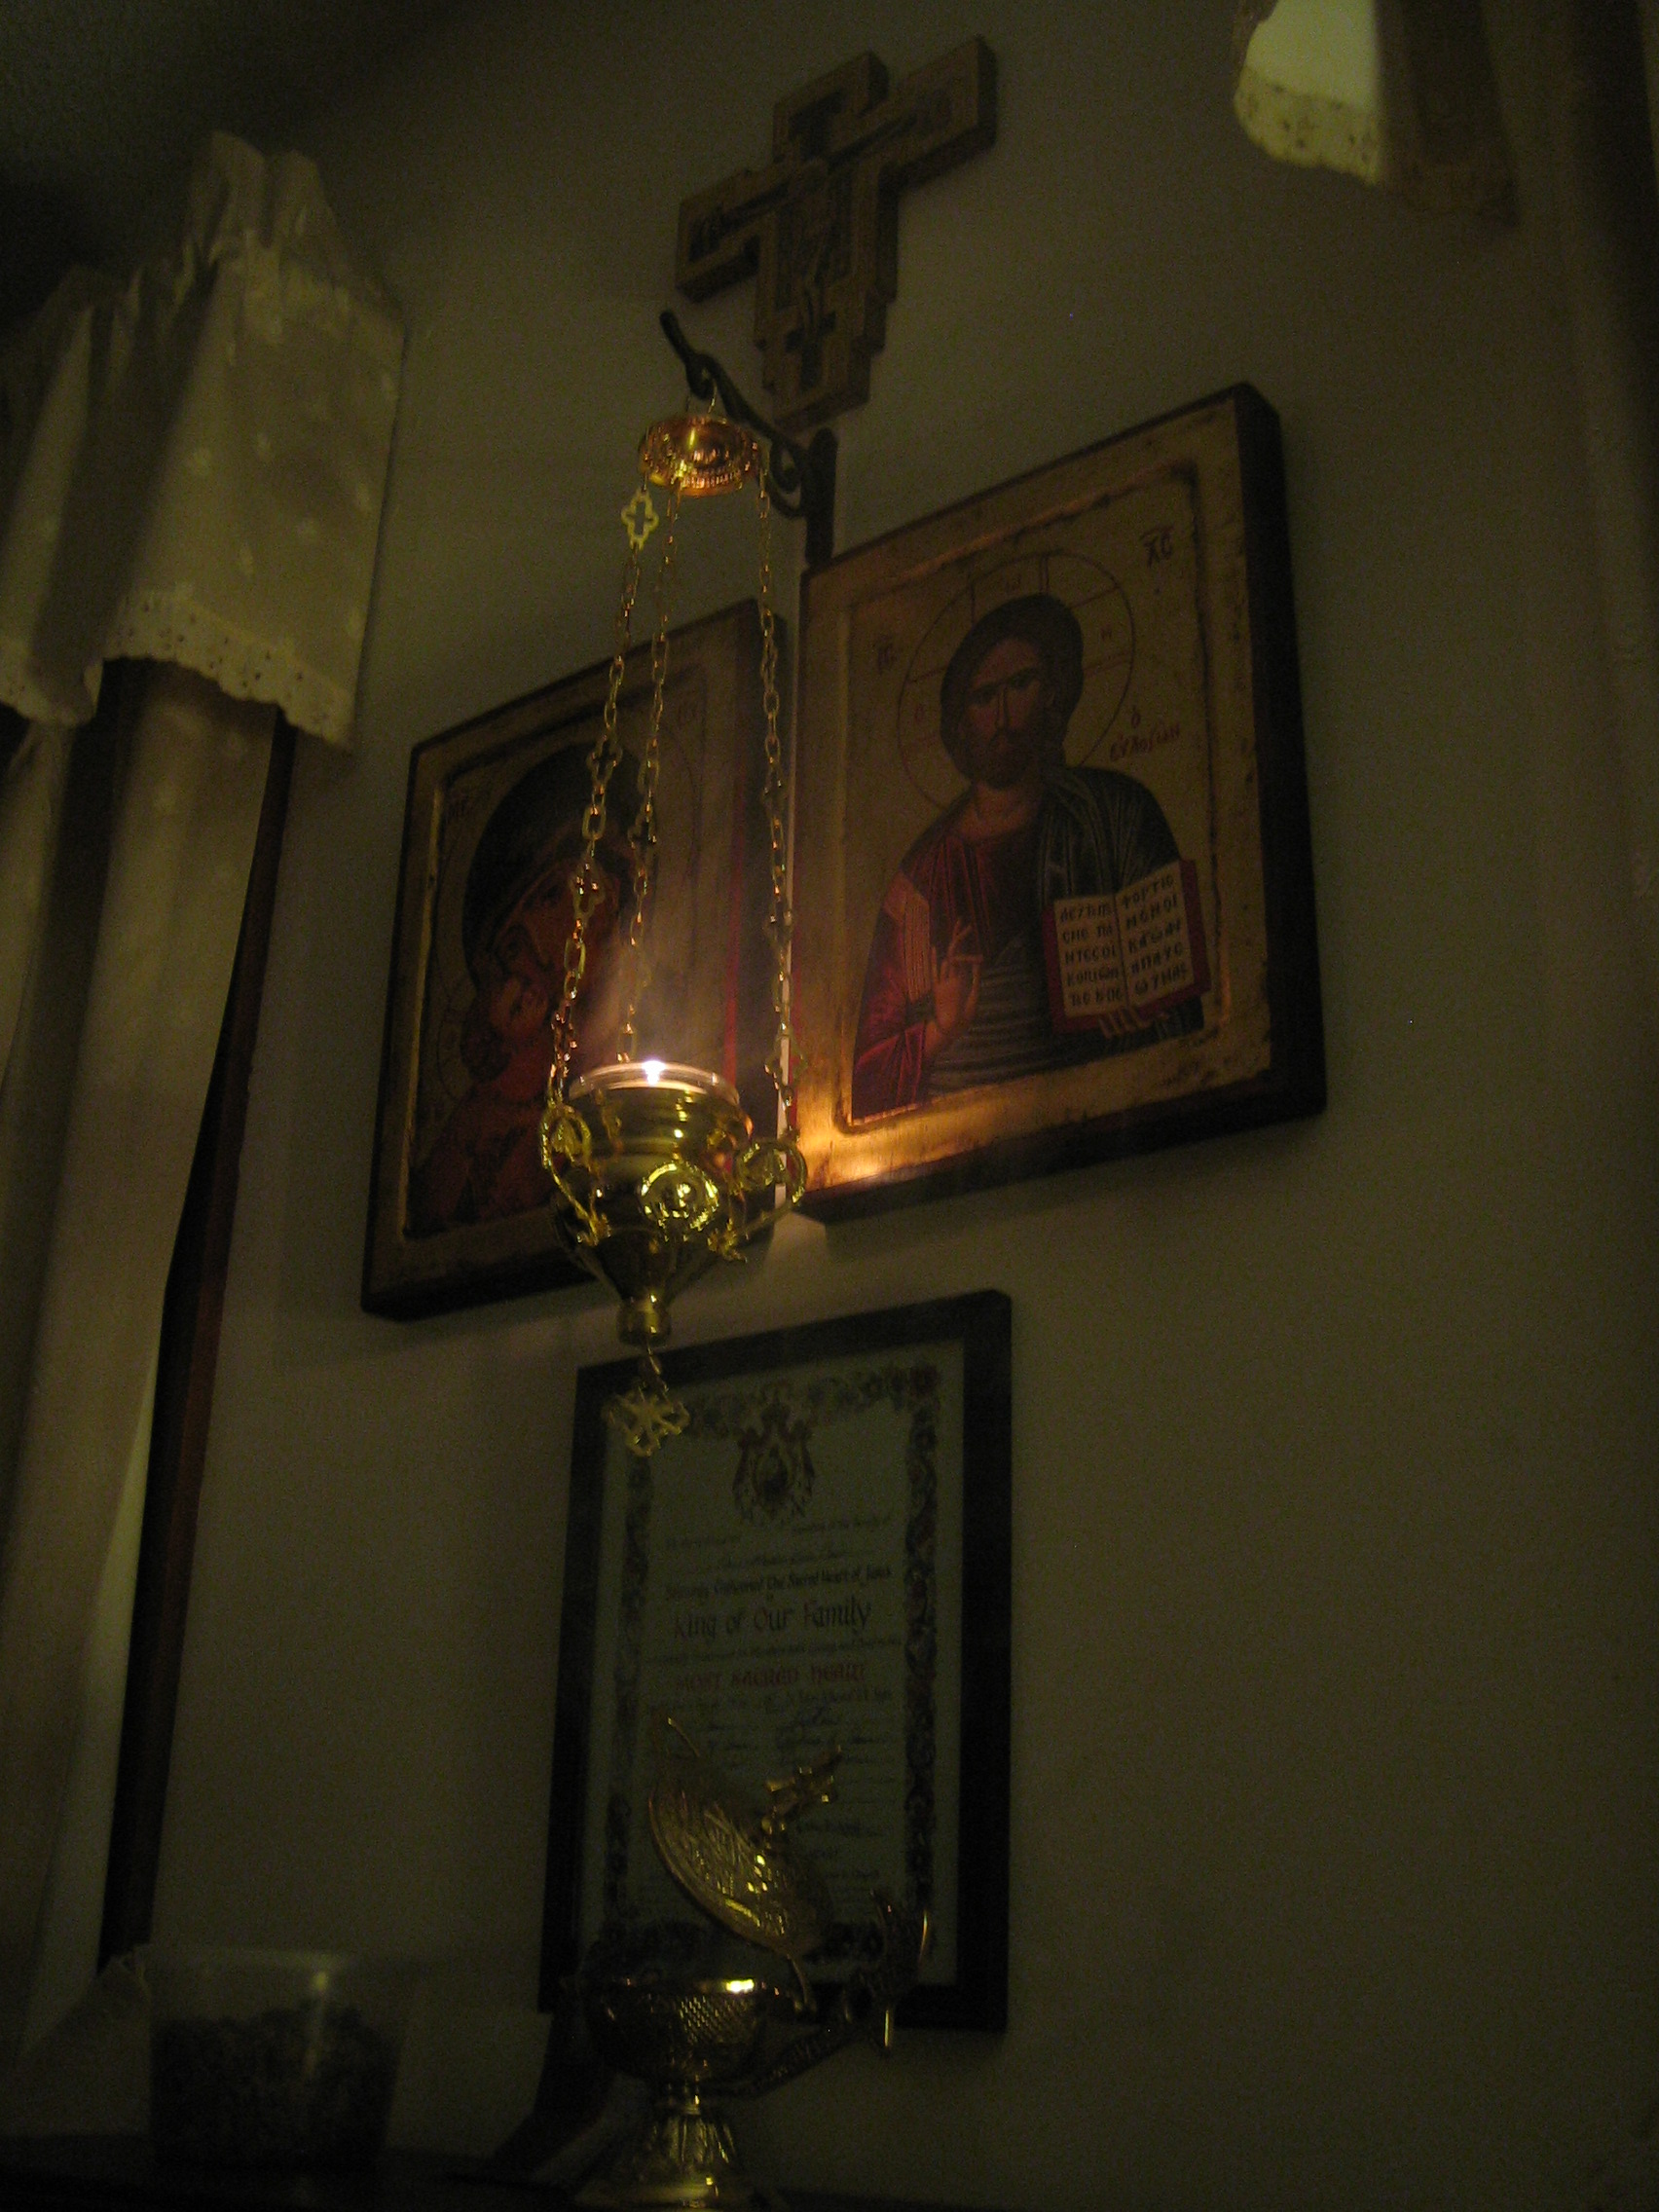 With the lit lantern and the smoke of the incense rising with our prayers.